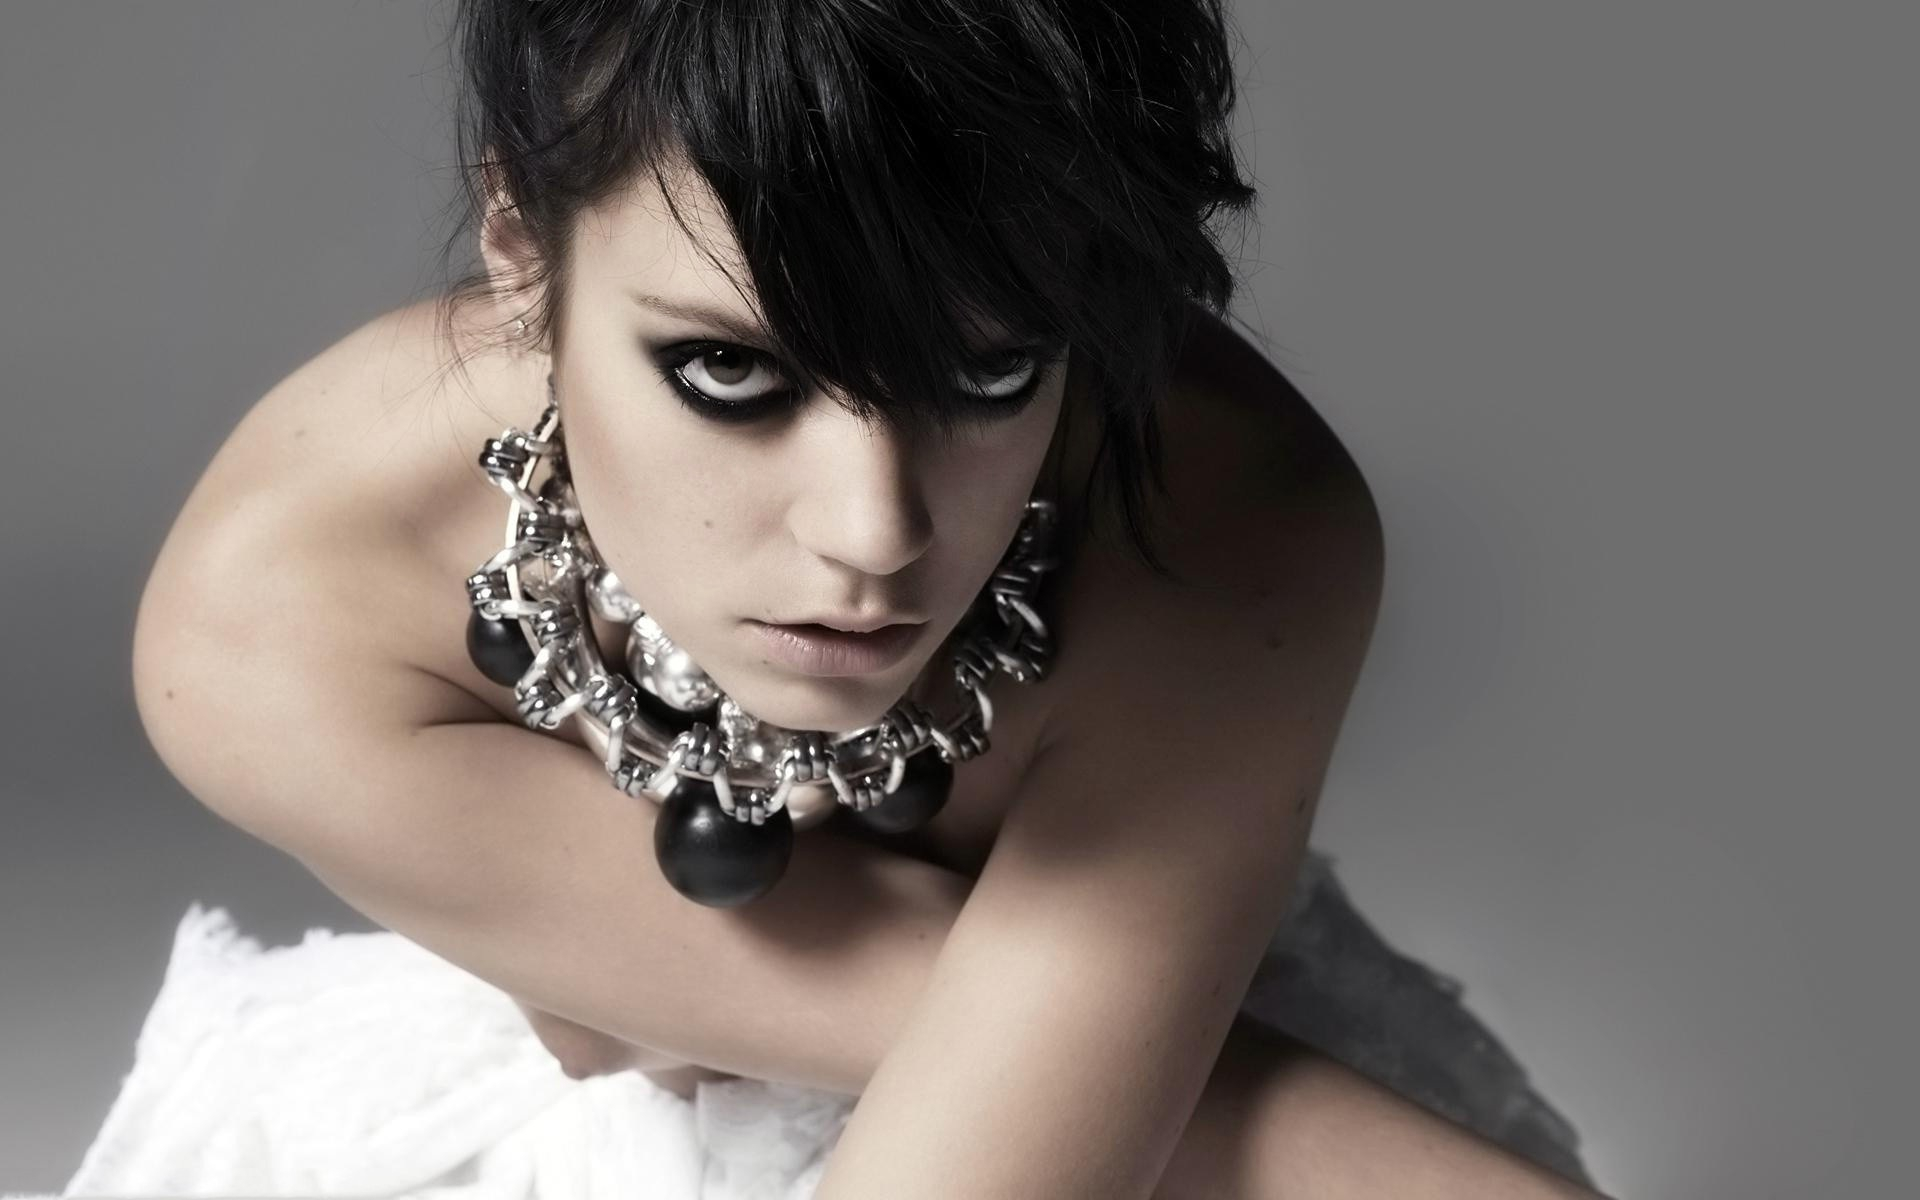 Lily Allen Wallpapers Images Photos Pictures Backgrounds Lily Allen